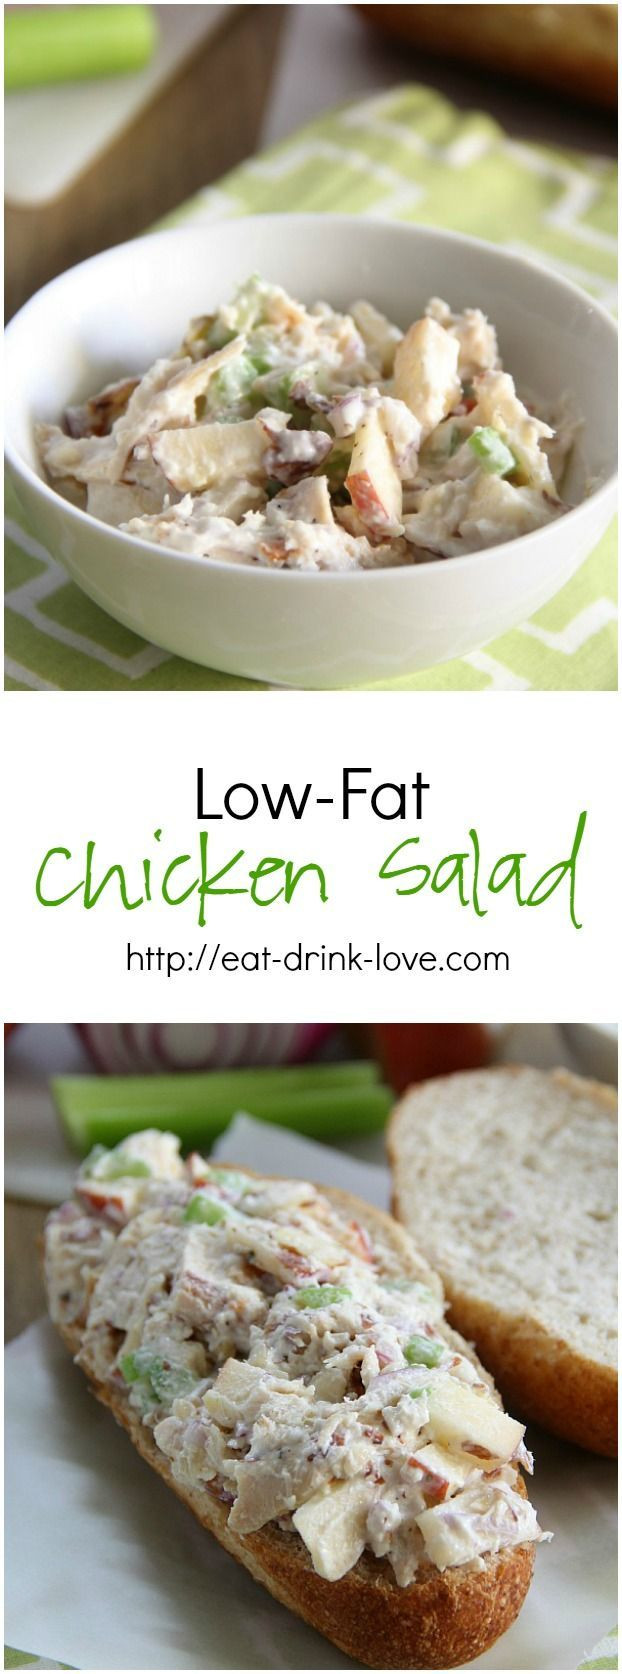 Low Fat Chicken Salad  1000 images about COOKING HEALTHY FOODS on Pinterest